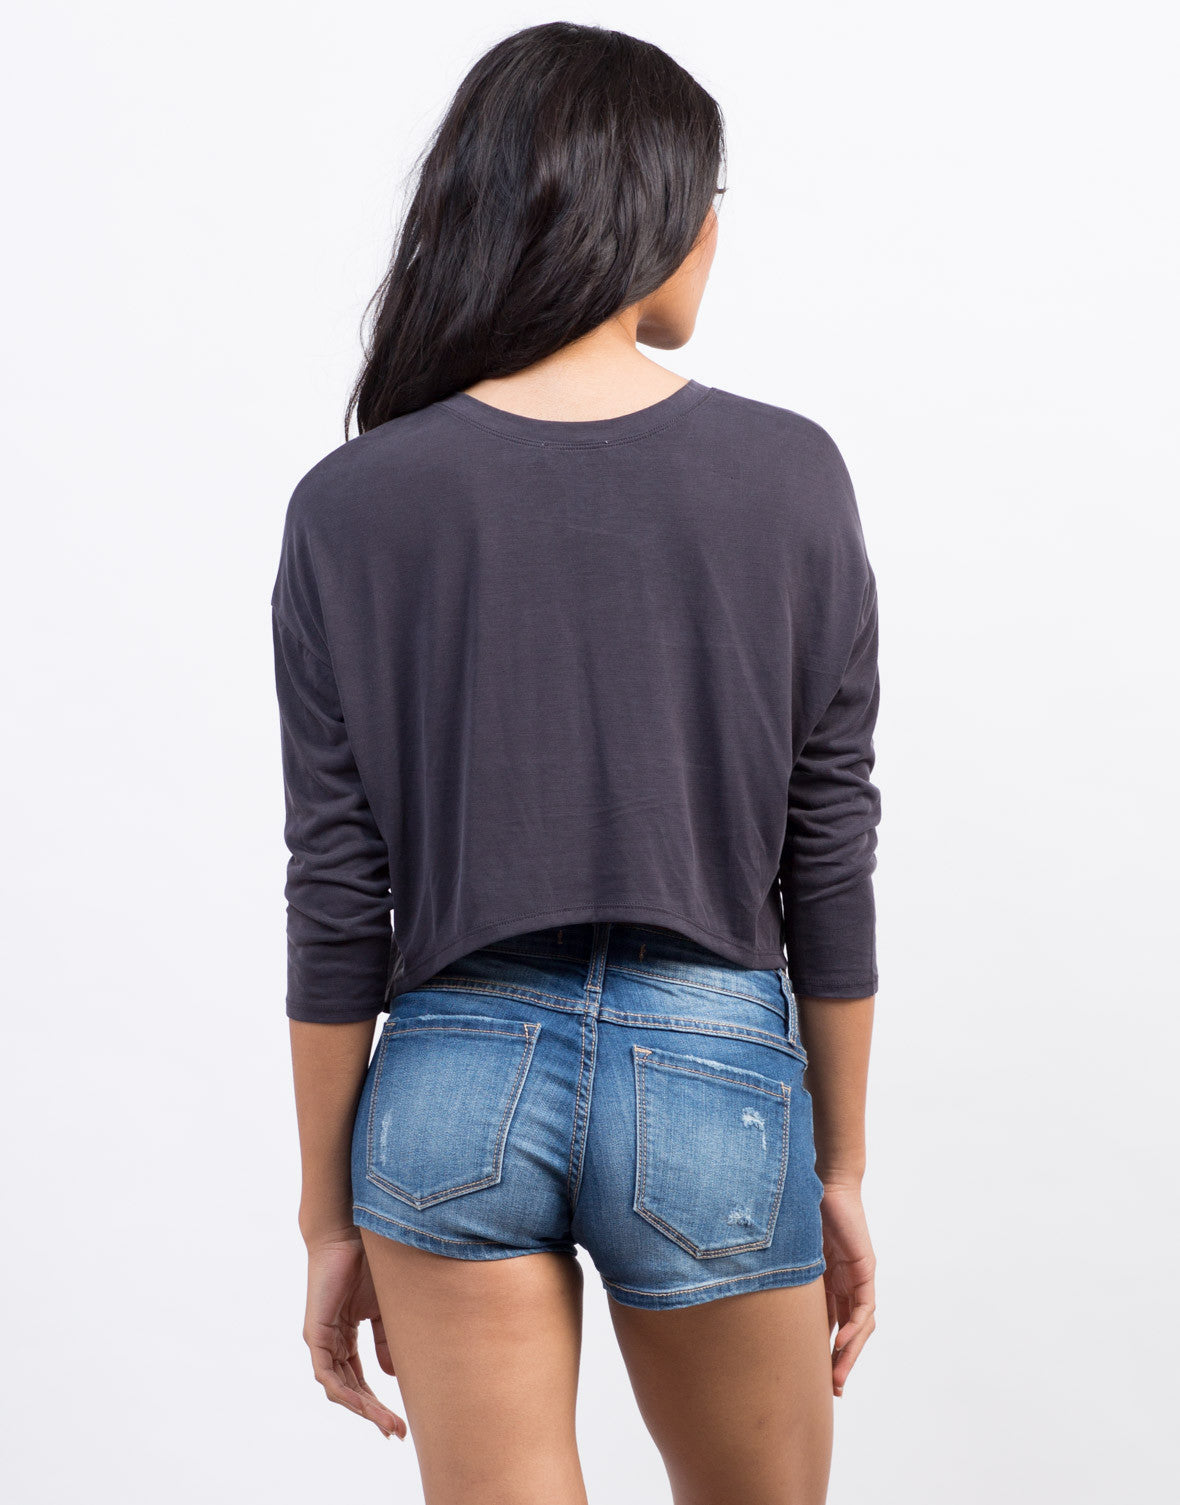 Back View of Soft Hi-Low Cropped Tee